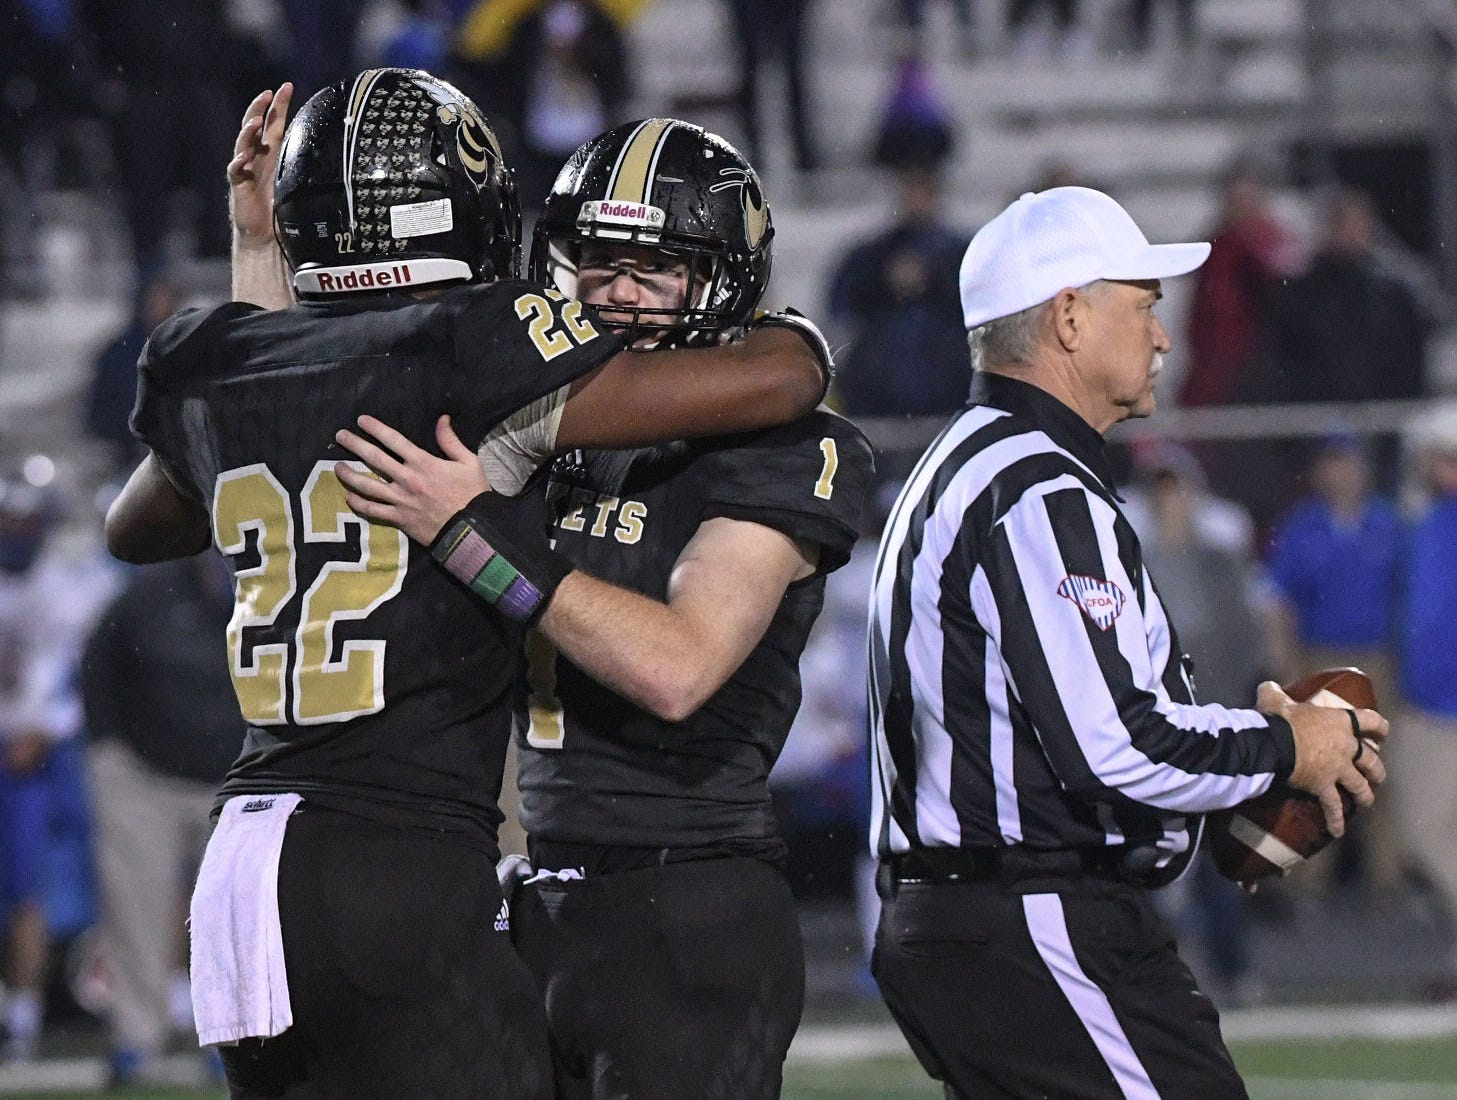 TL Hanna senior running back Jaydon McKinney (22), left, hugs senior quarterback Alex Meredith (1) raises the ball after the last play of the fourth quarter of the Class AAAAA state playoffs at TL Hanna High School in Anderson on Friday, November 30, 2018. Hanna beat Byrnes 57-28 and advances to play Dutch Fork next Saturday.